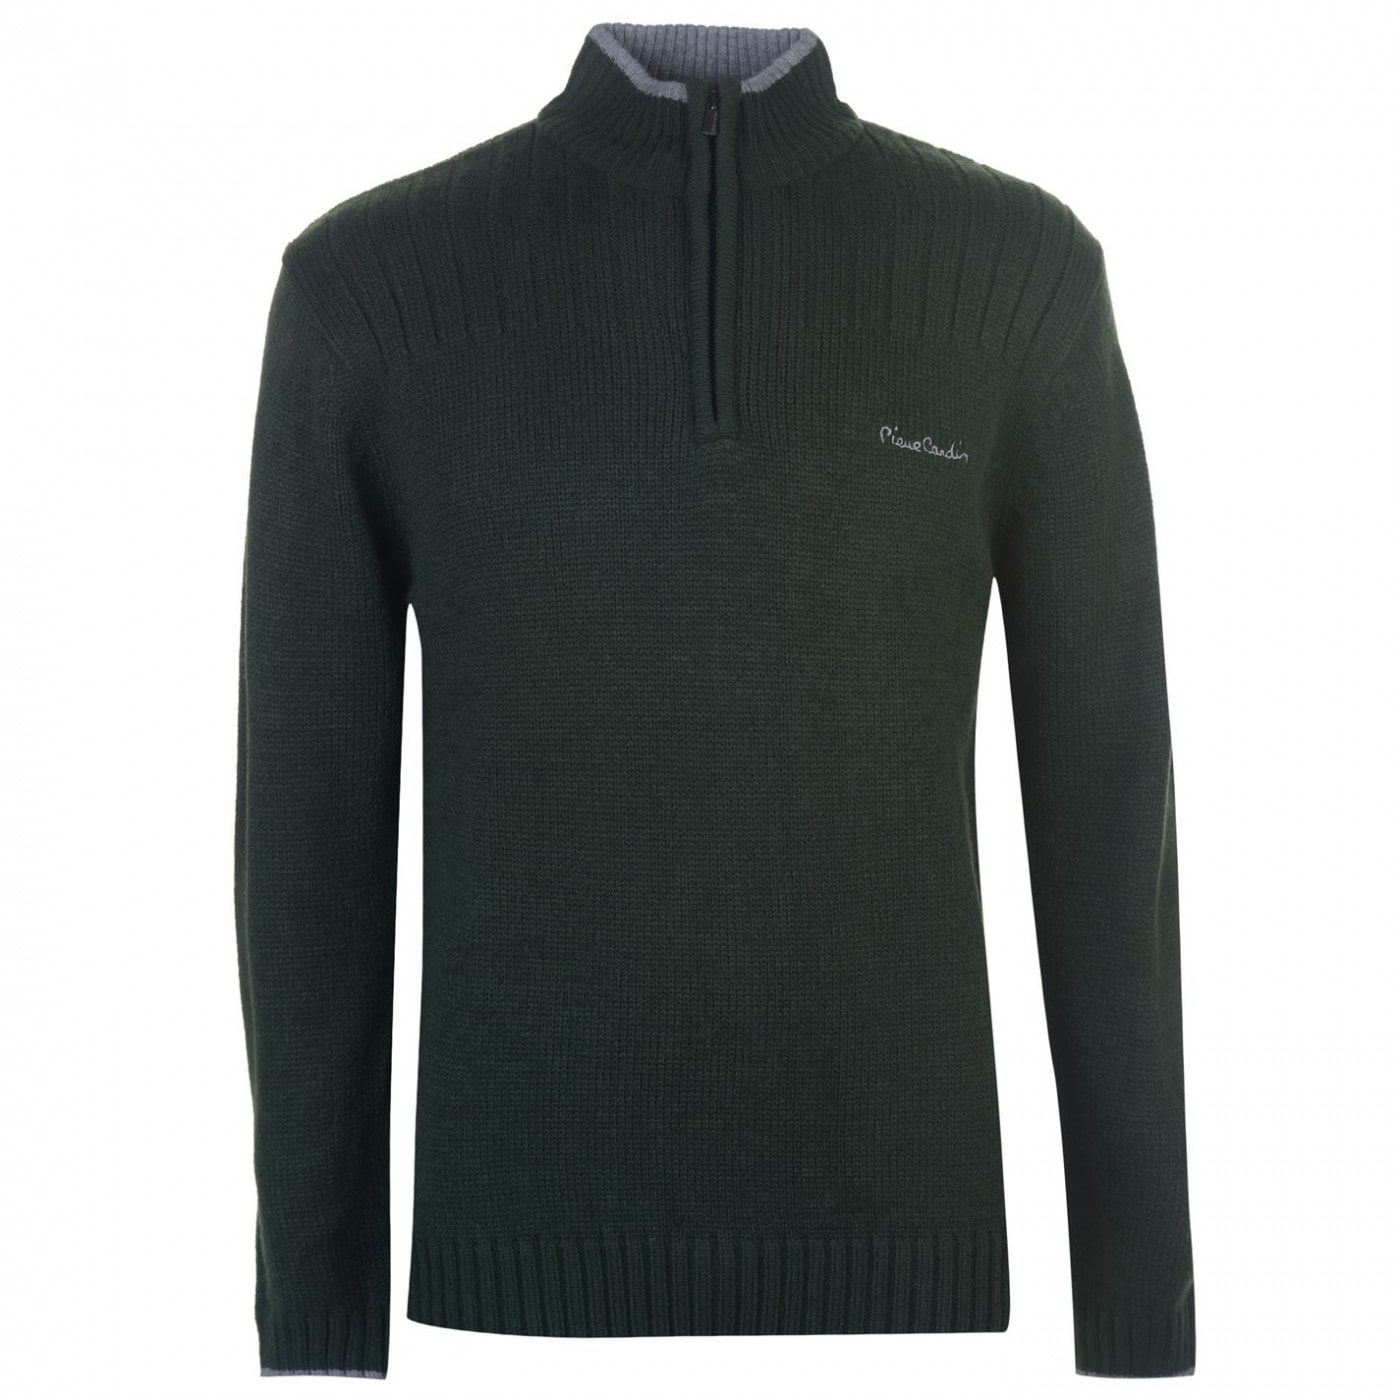 Pierre Cardin Quarter Zip Plain Knit Mens